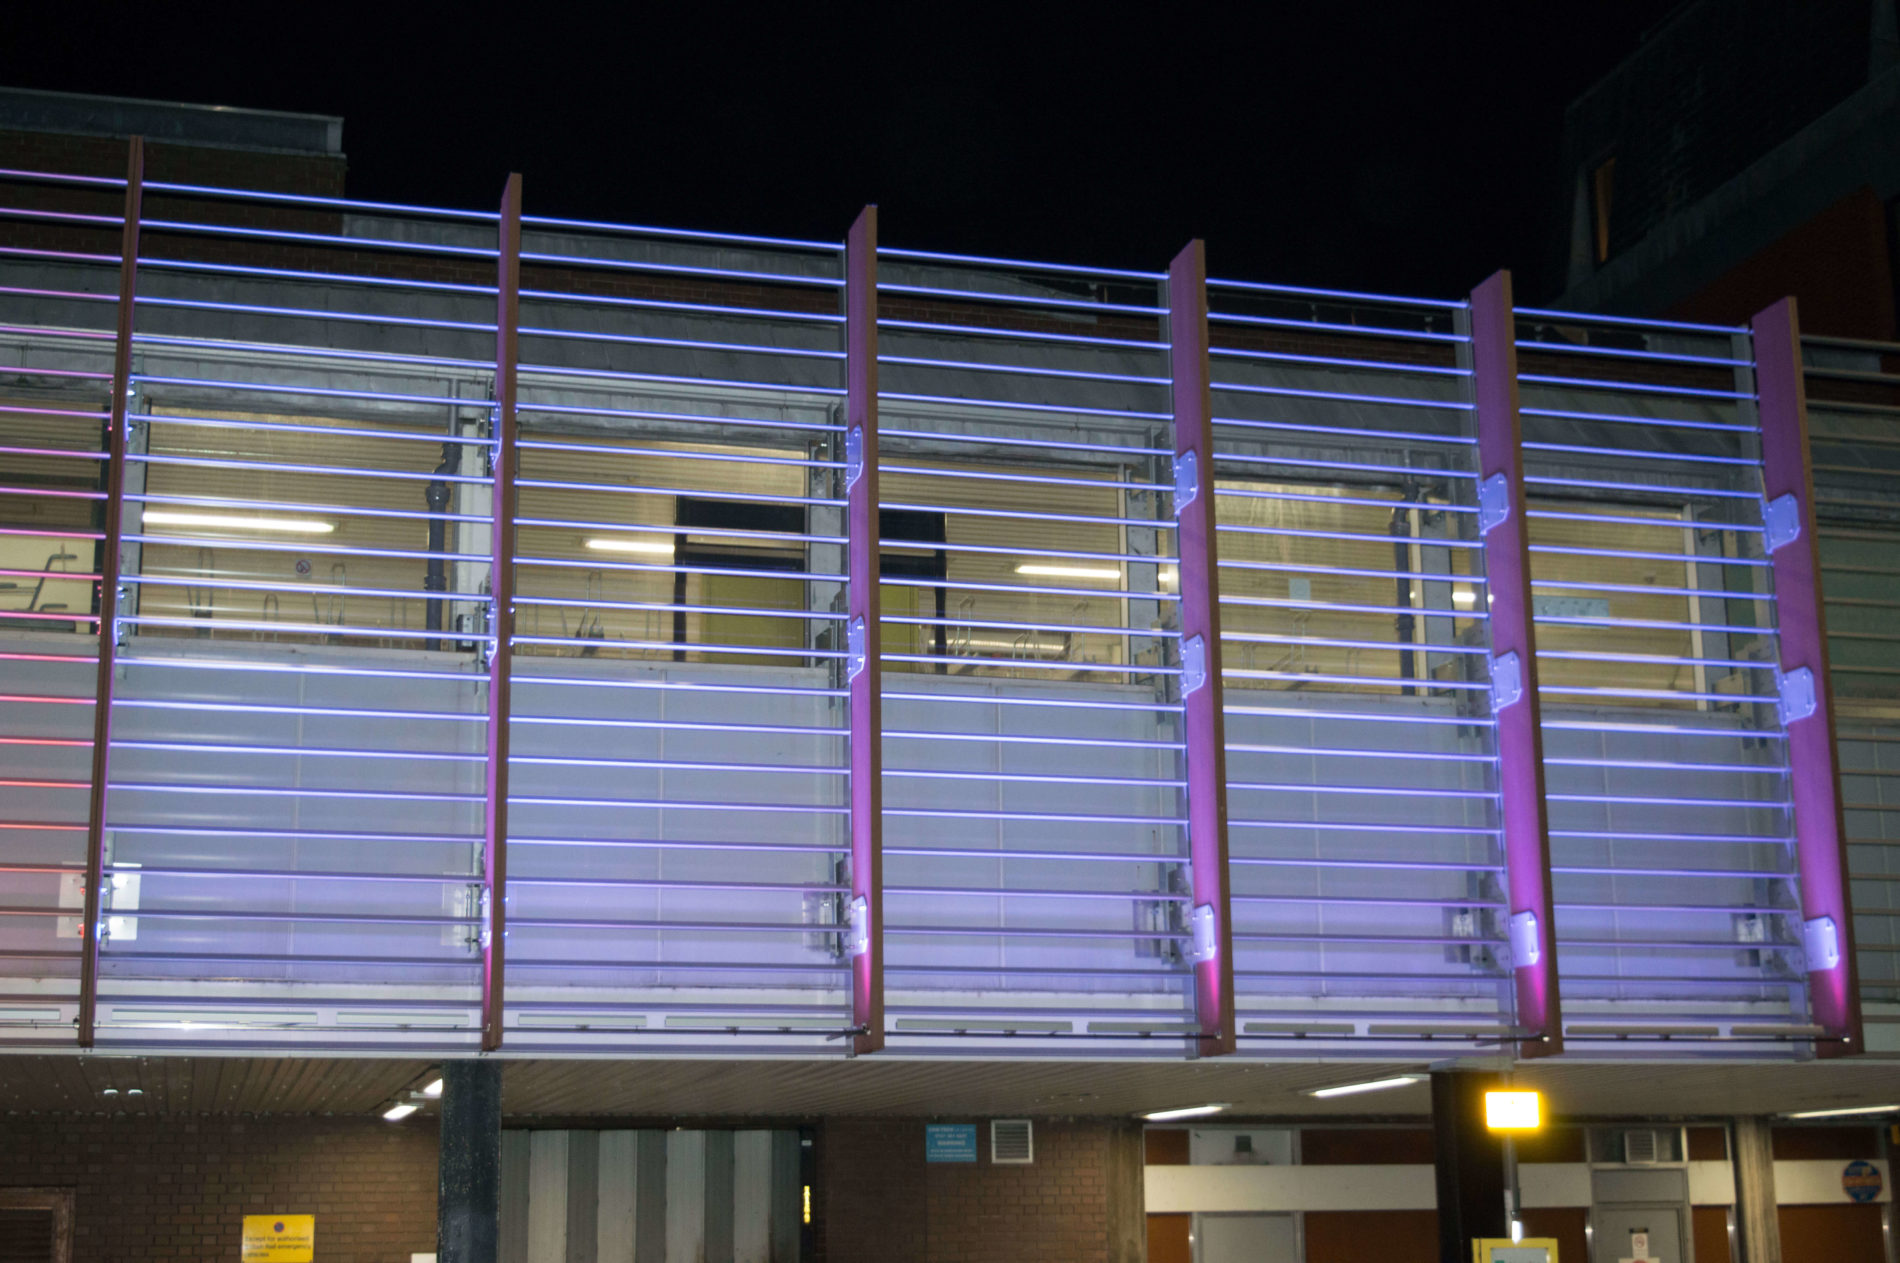 moorfield-station-liverpool-3-mjlighting